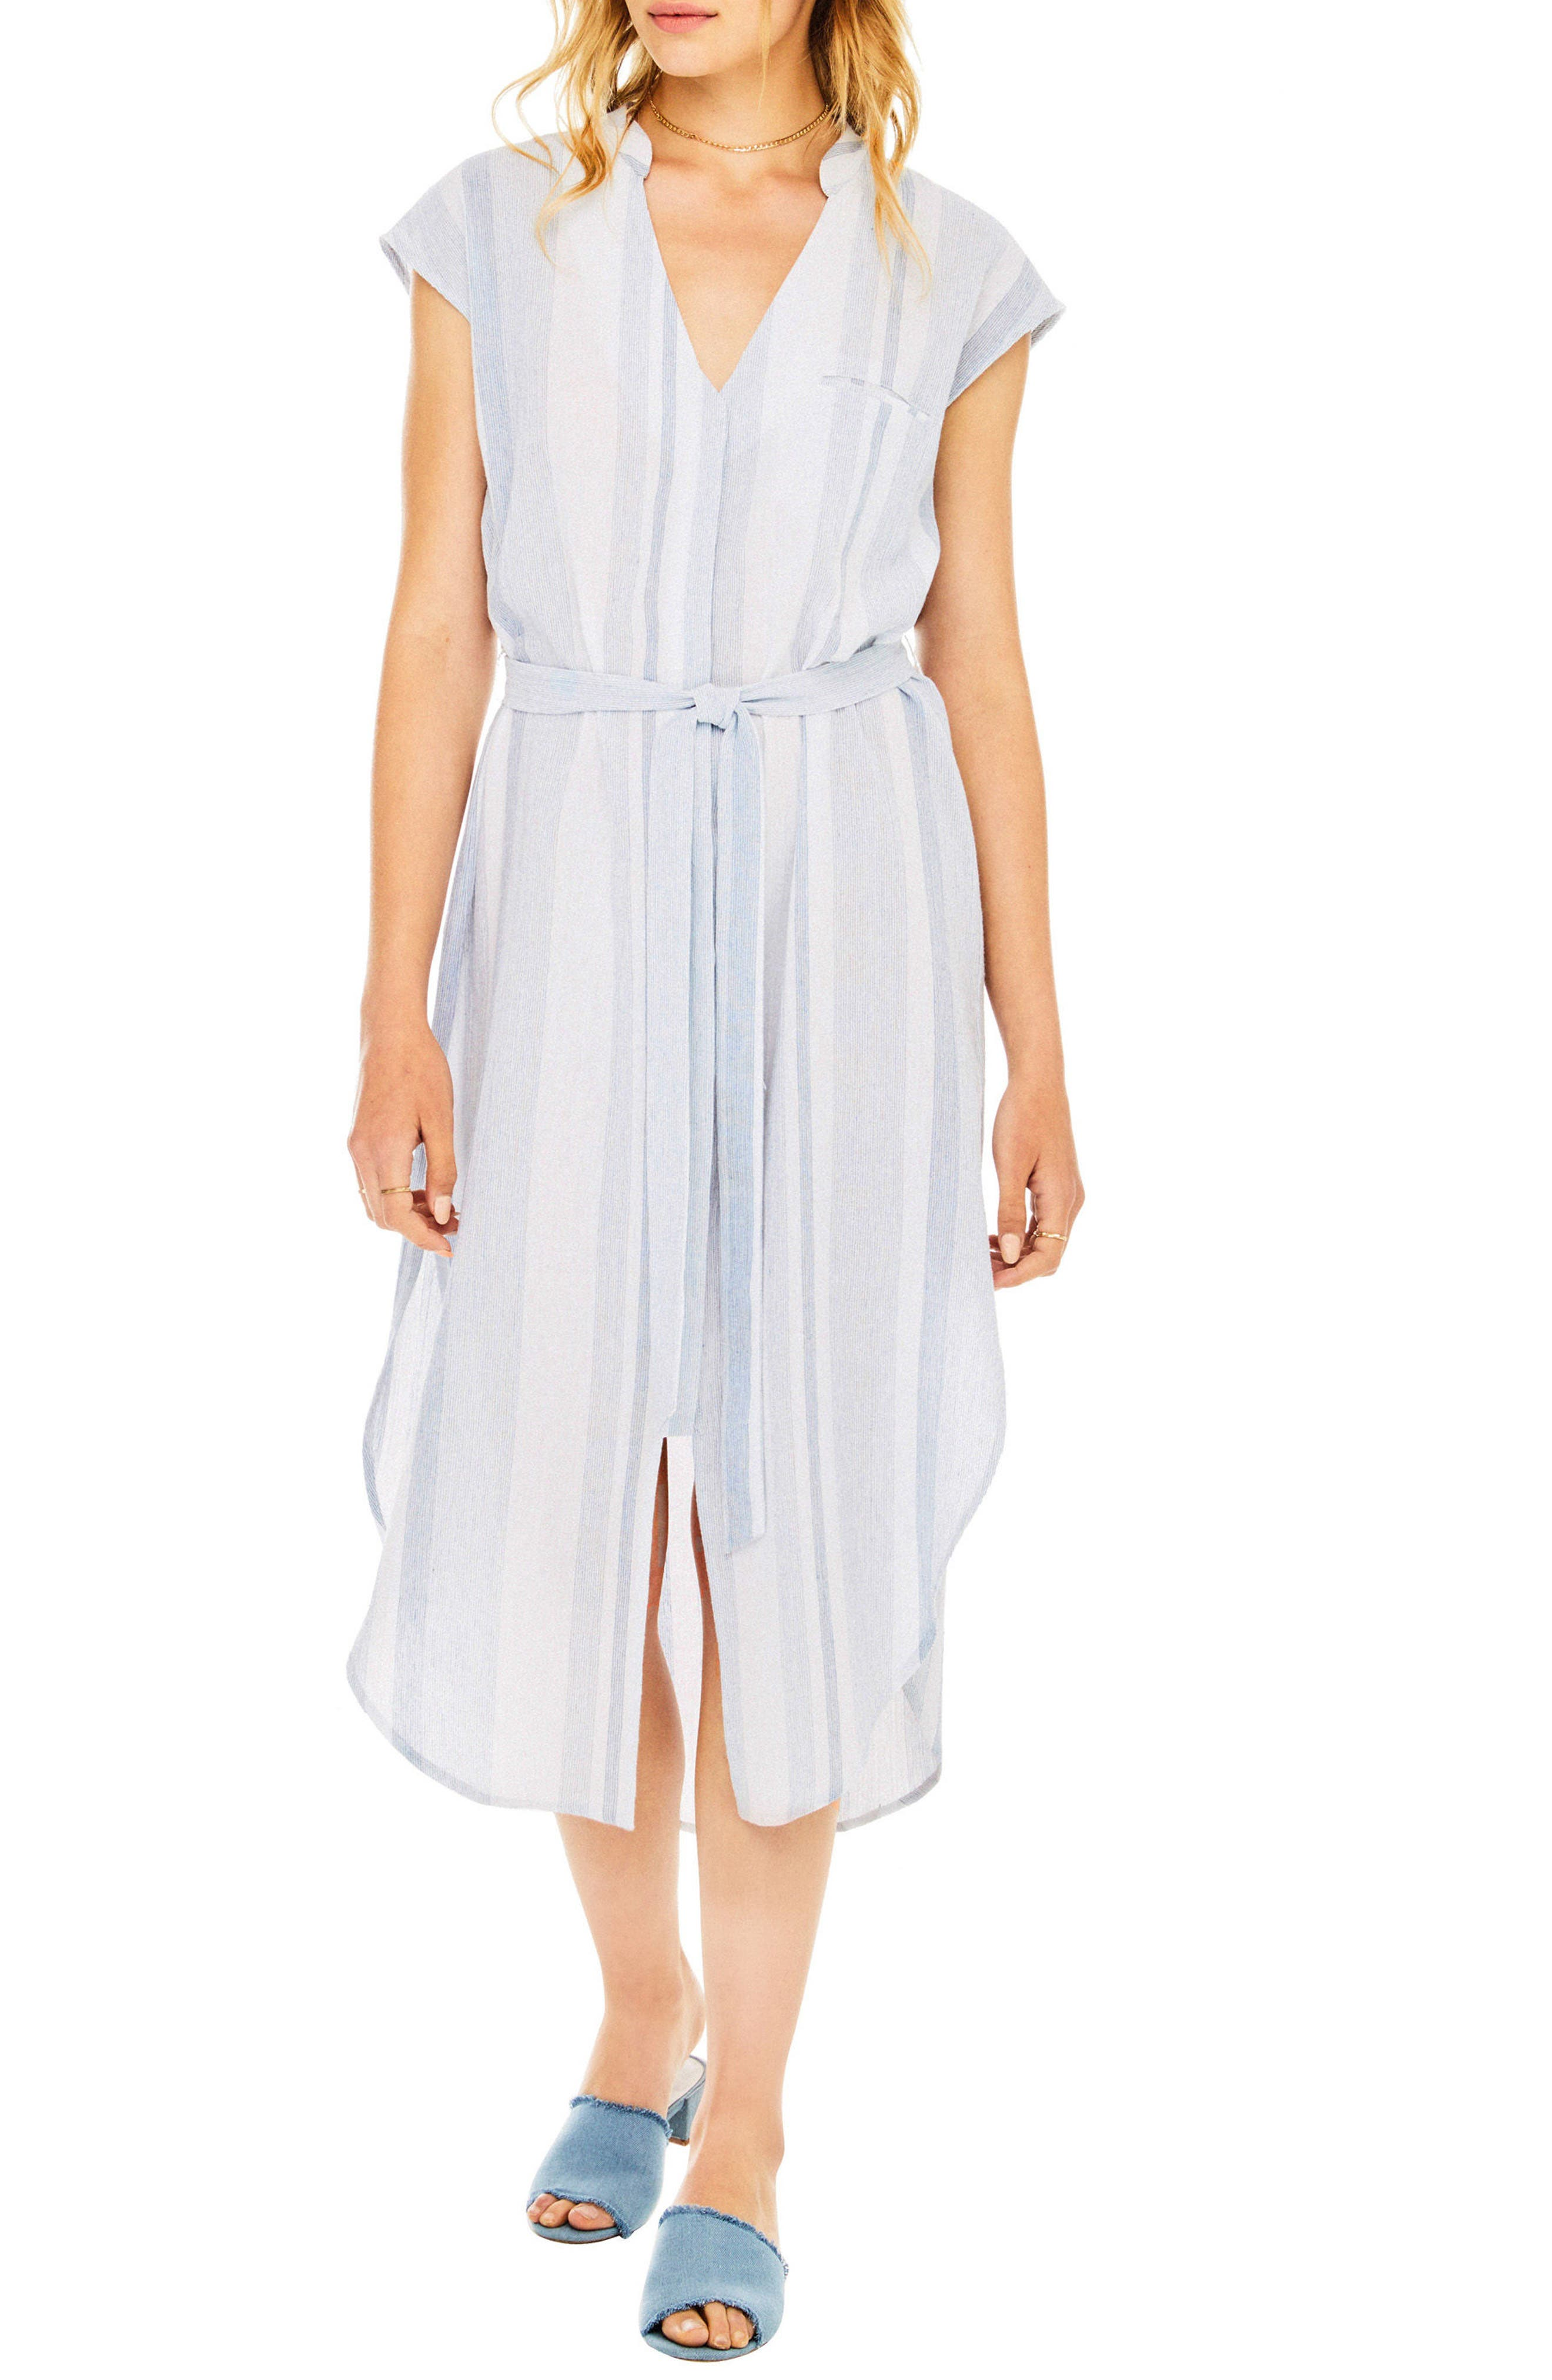 Sawyer Shirtdress,                         Main,                         color, Sky Blue Stripe